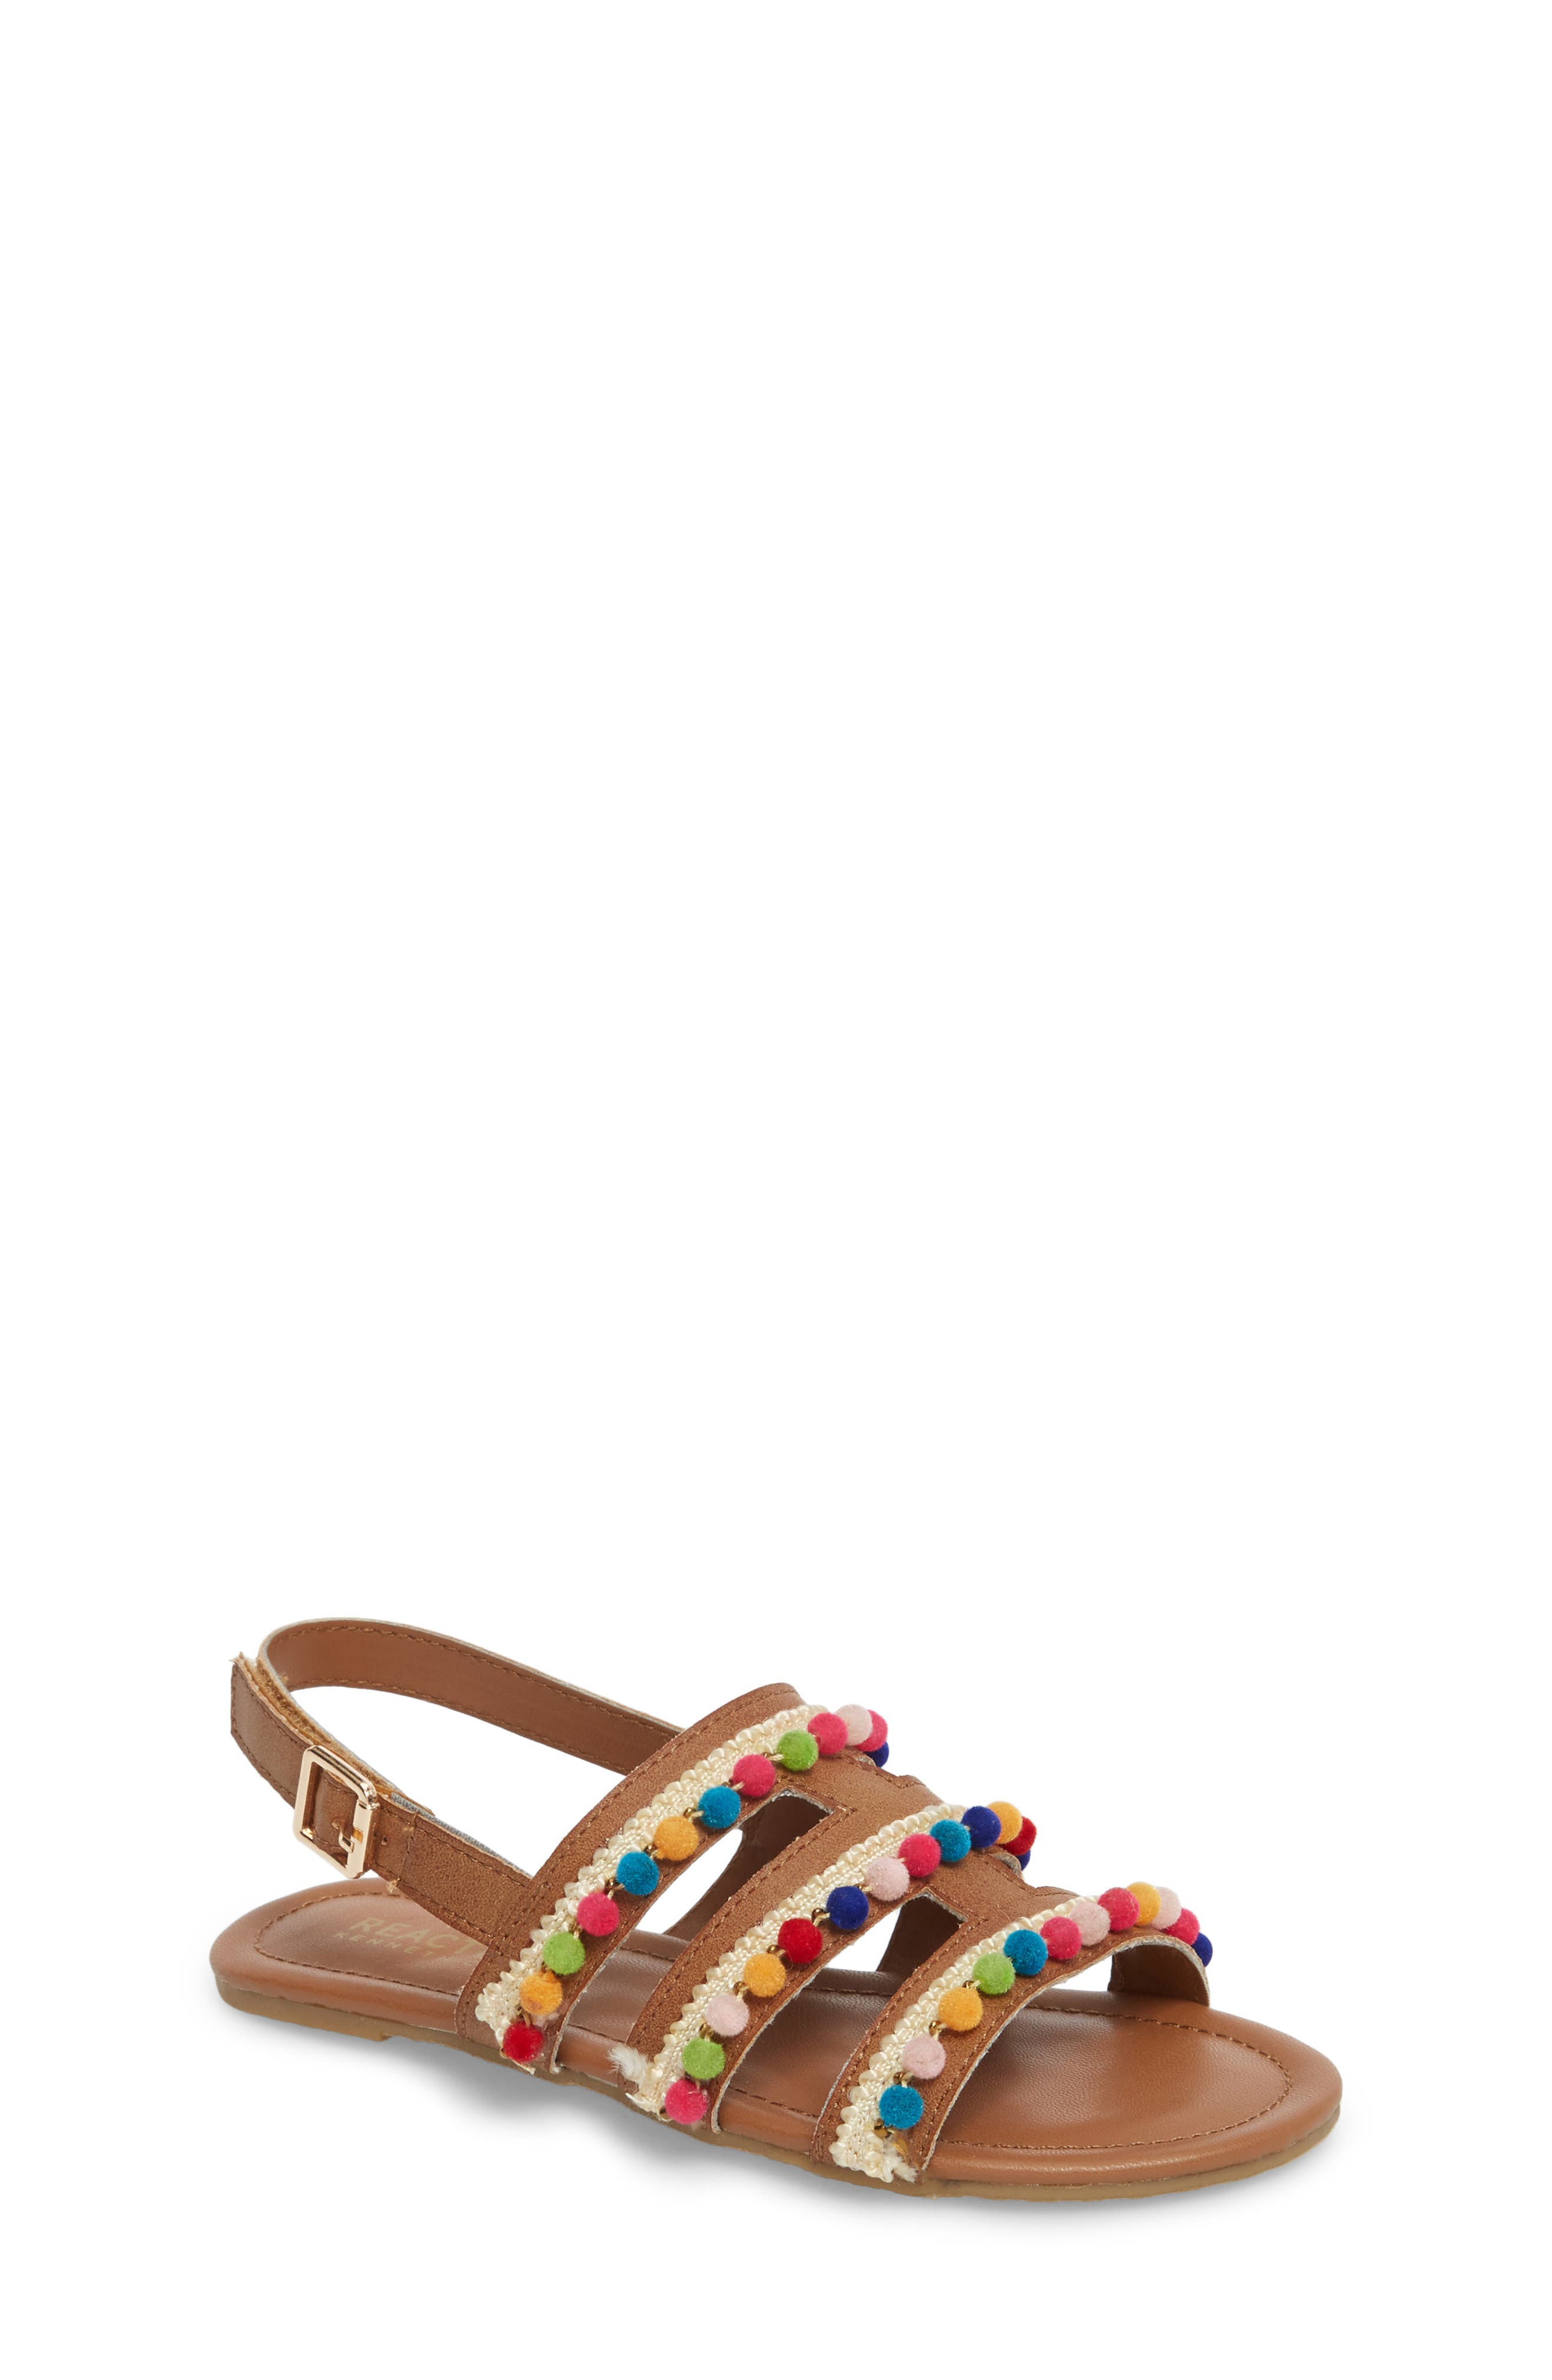 Kiera Pom Embellished Sandal,                         Main,                         color, 259